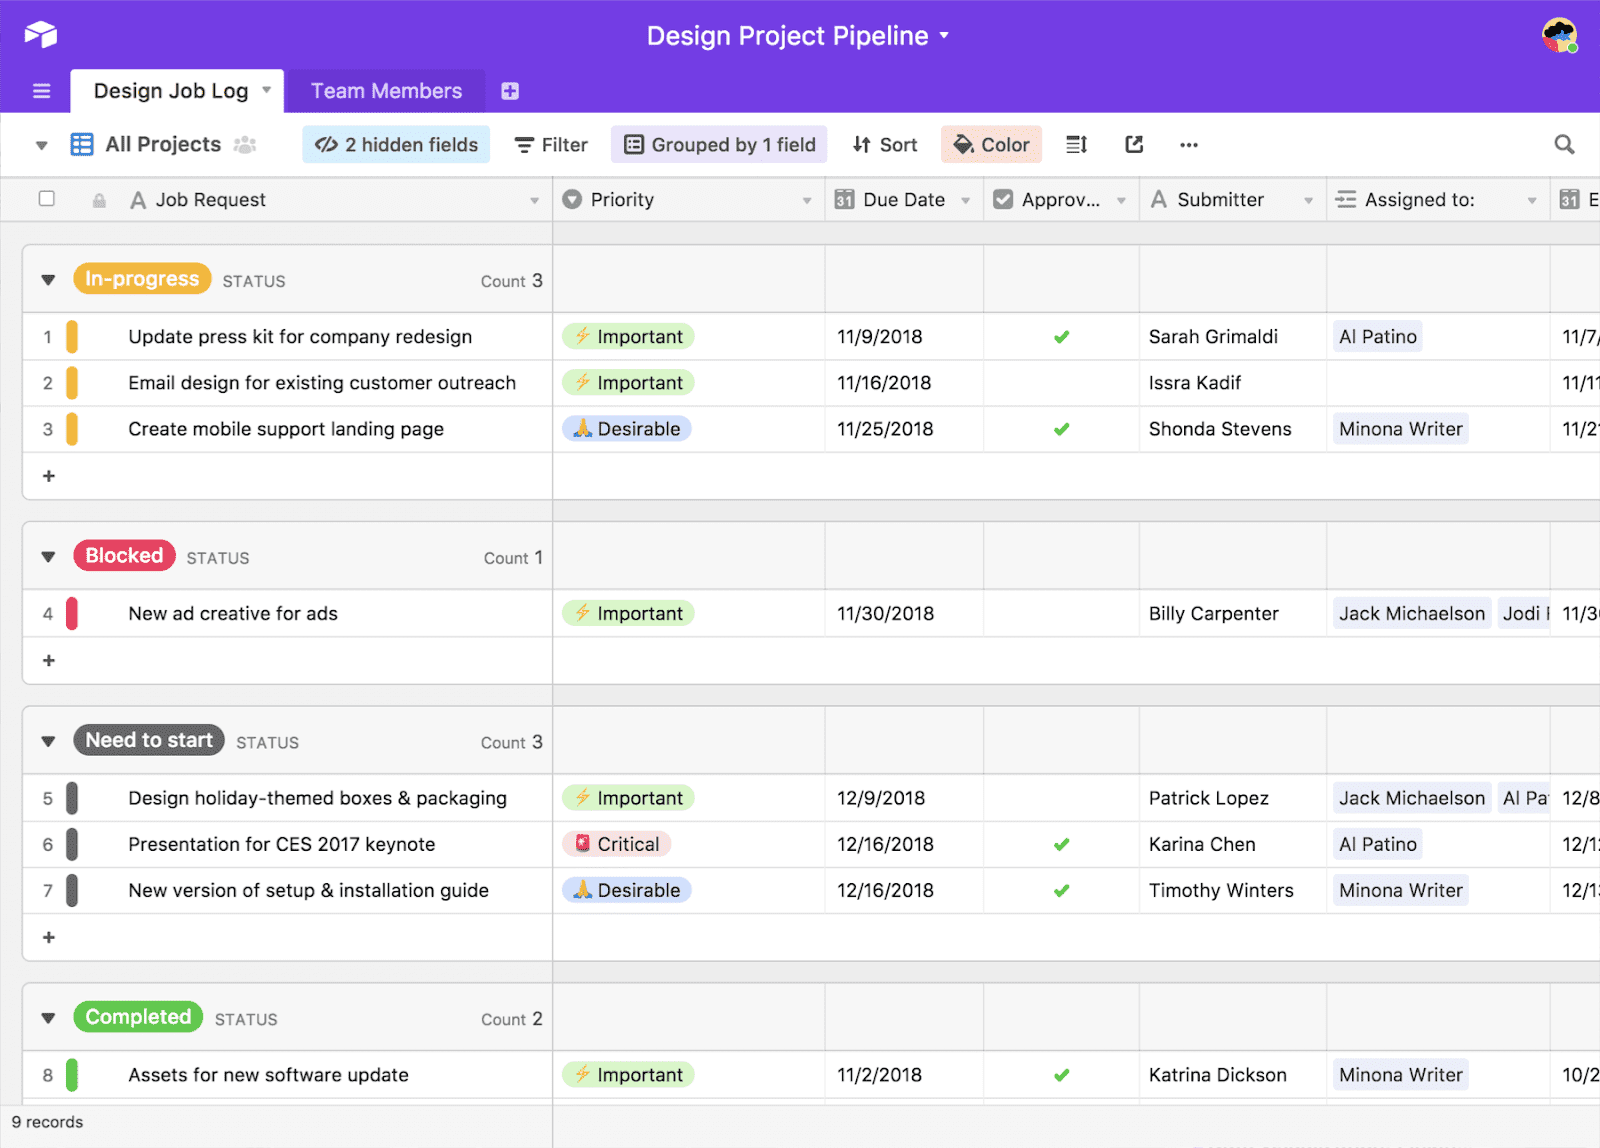 Airtable data management tool showing organizational capabilities for managing office projects